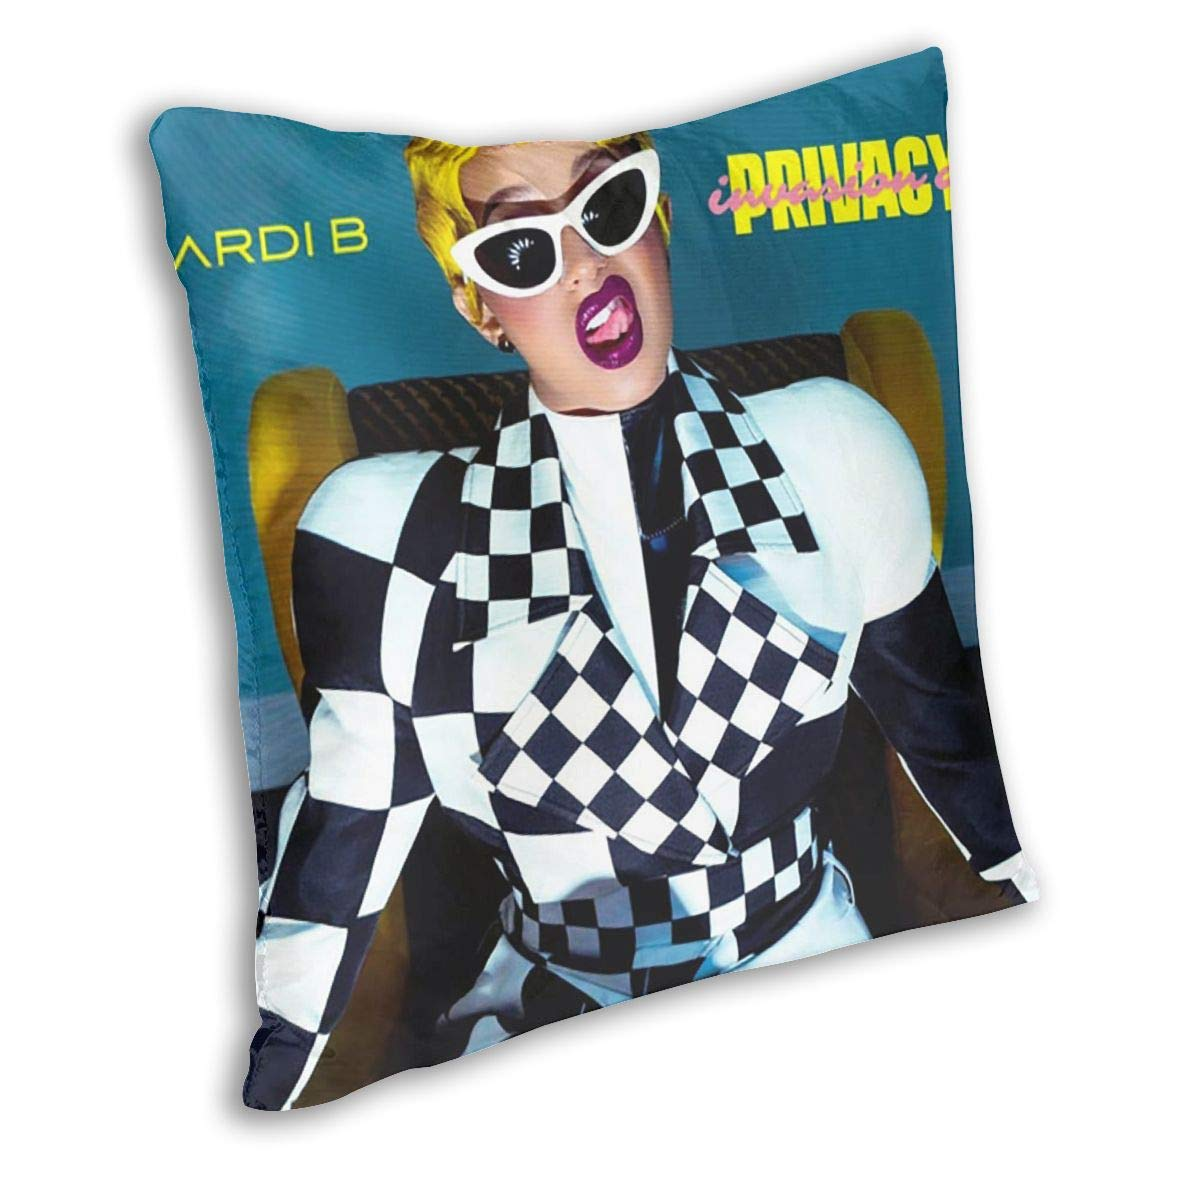 Amazon.com: Magee Unisex, Cardi B Fashion Pillow Cover: Home ...